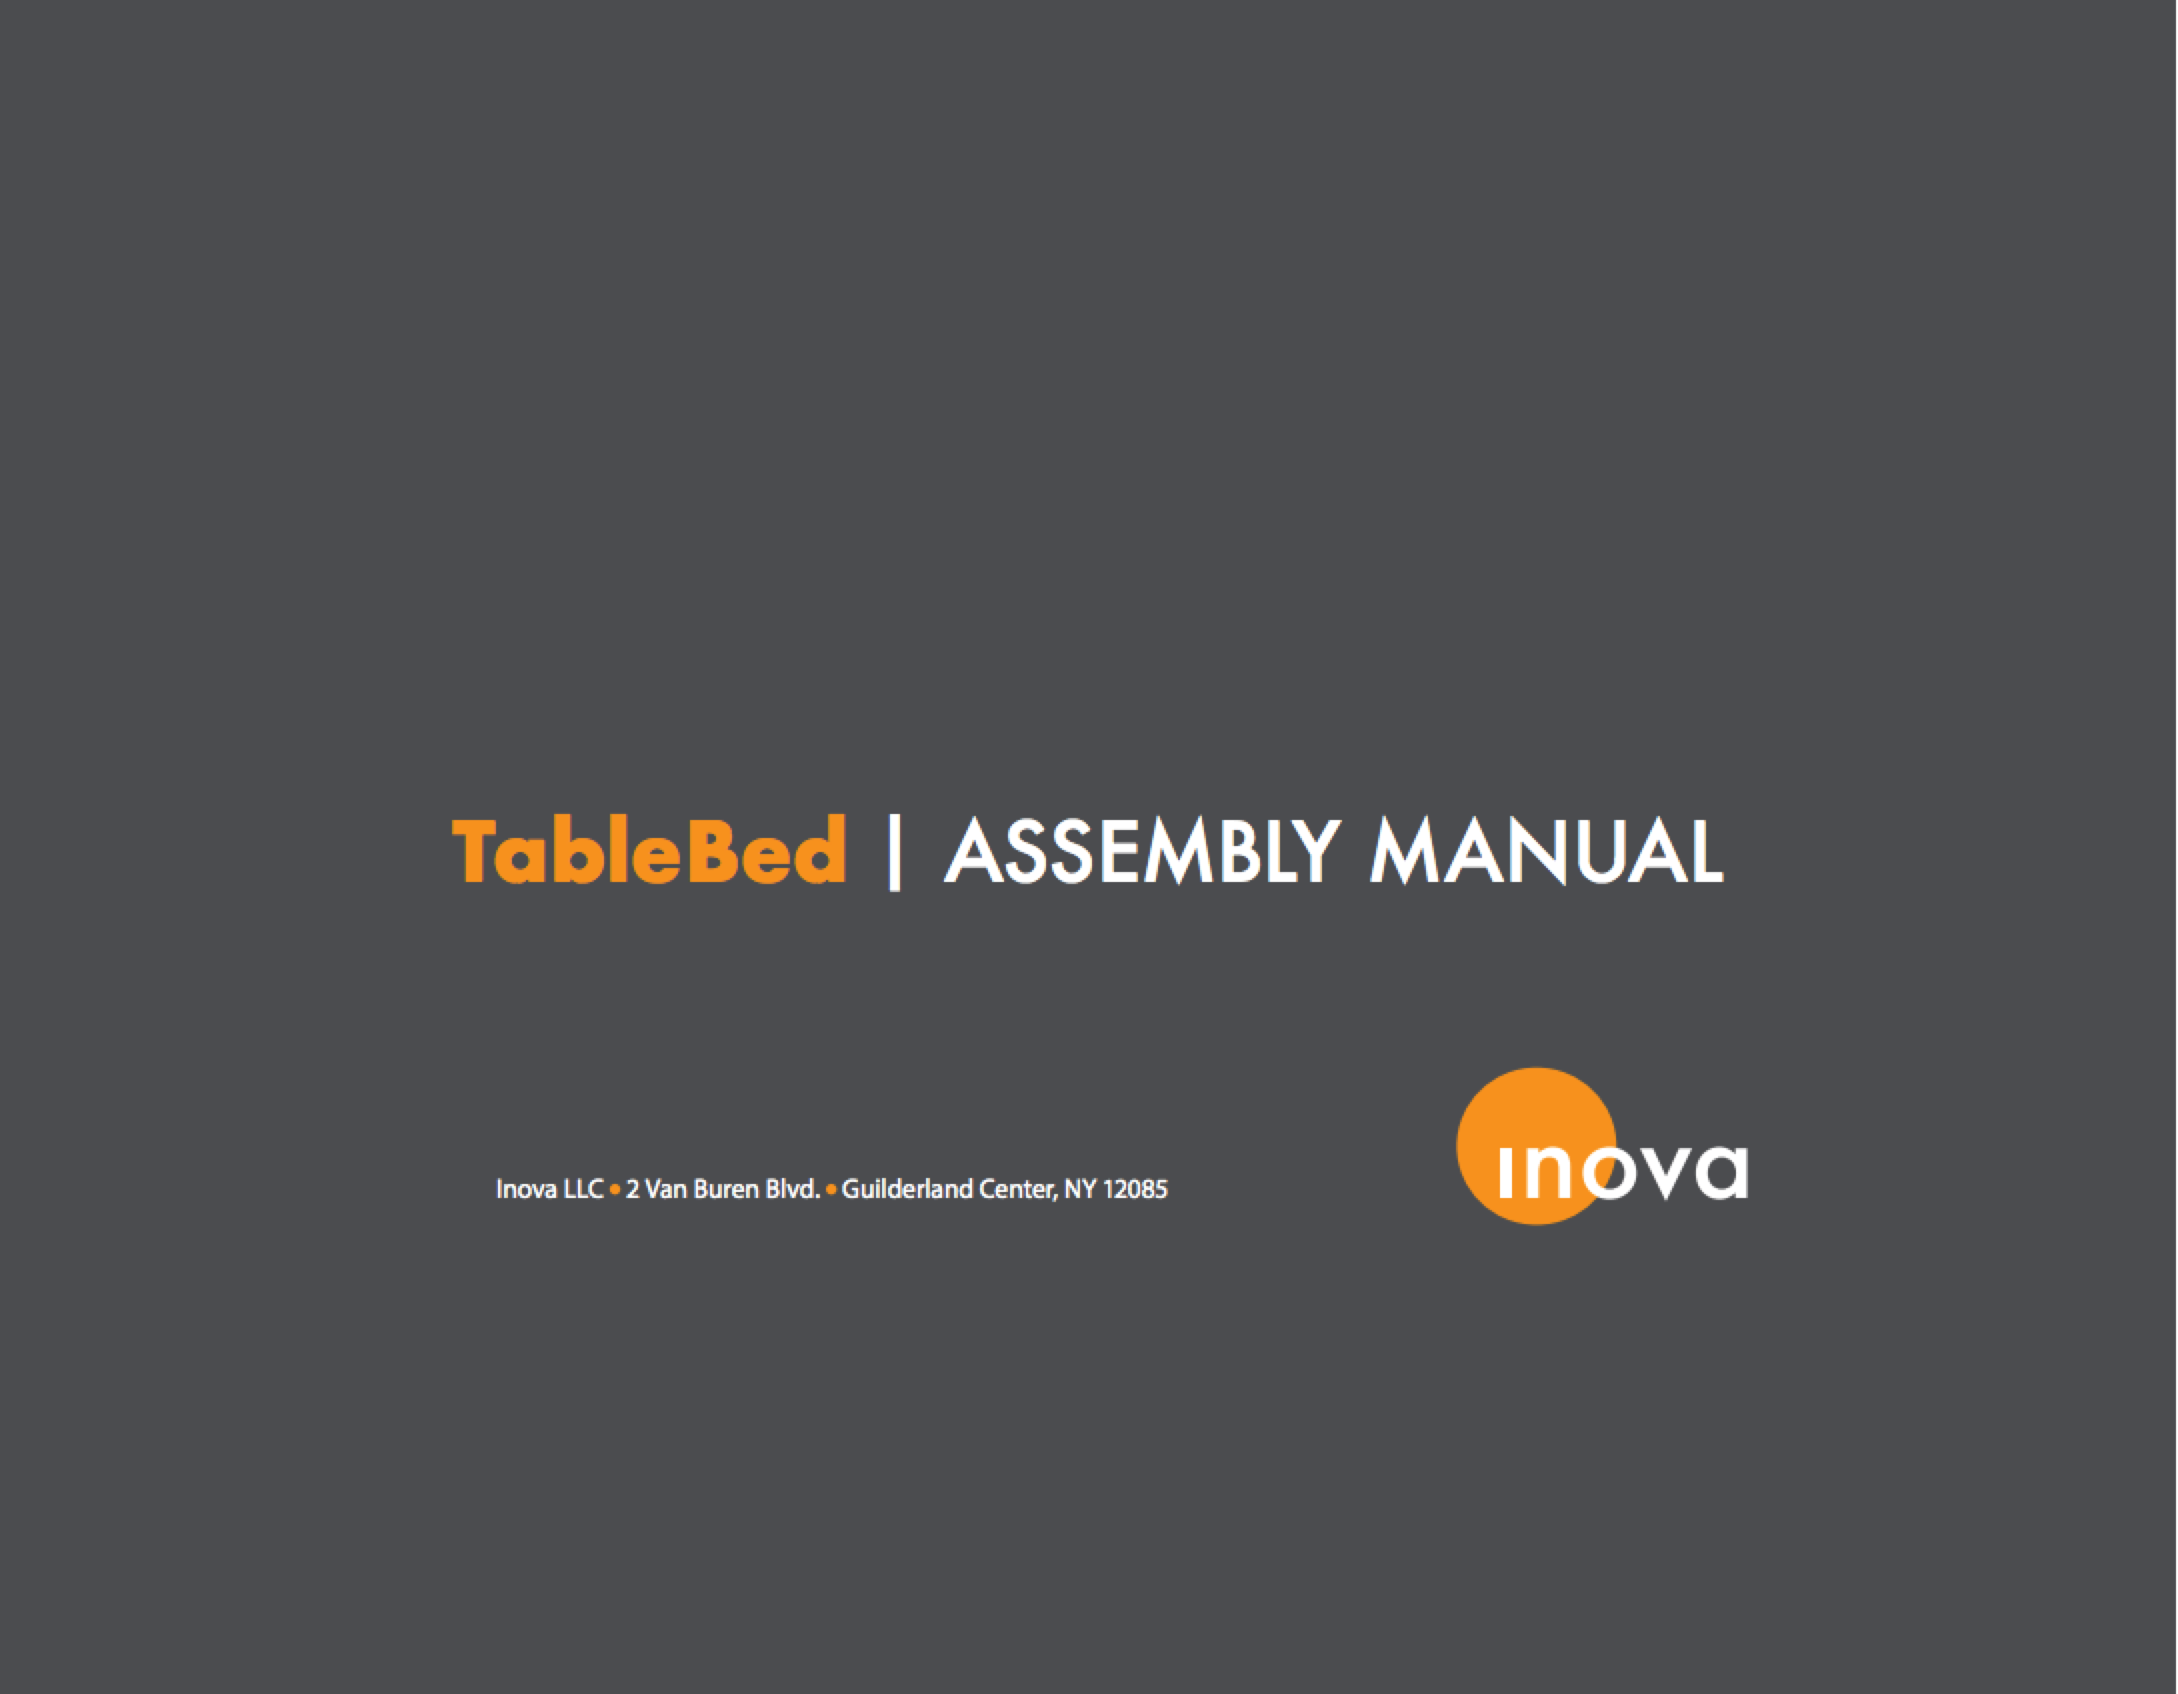 TableBed Assembly Manual